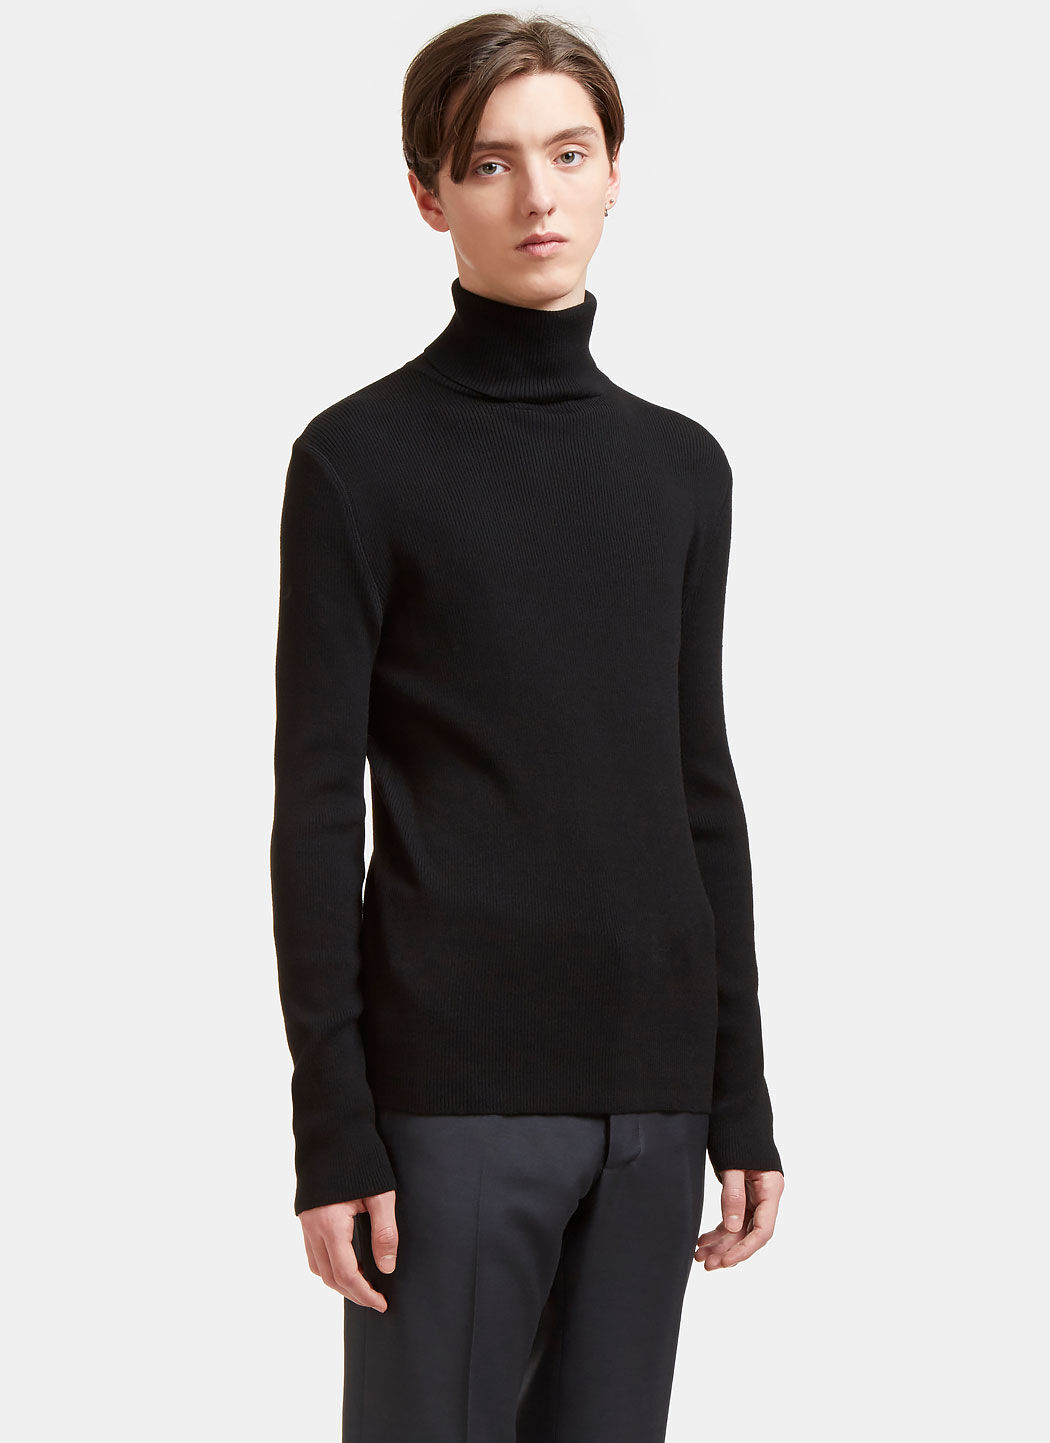 AIEZEN Men's Ribbed Polo Neck Sweater from SS15 in Black